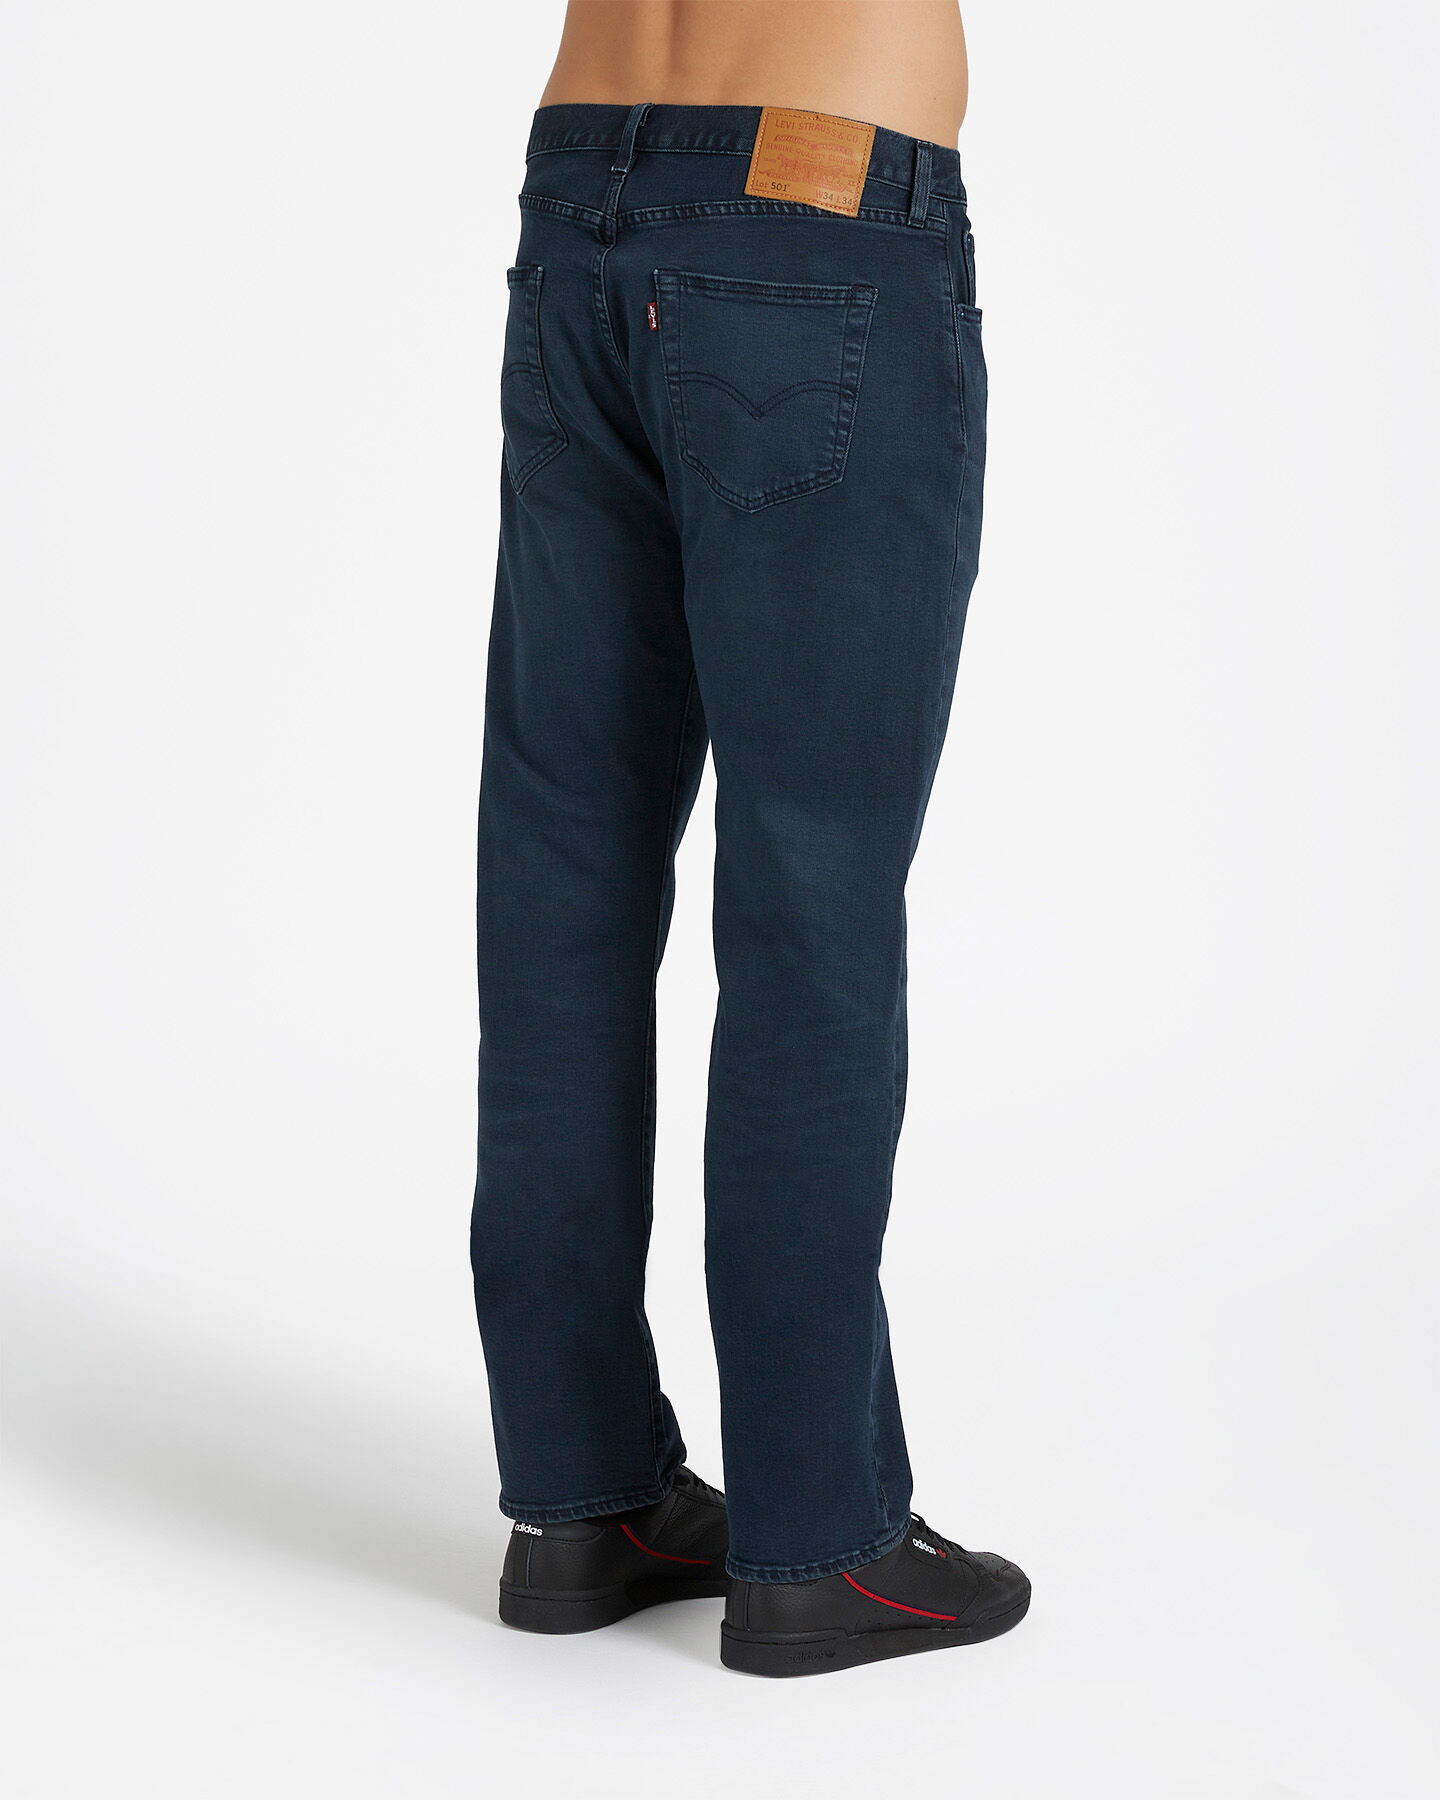 Jeans LEVI'S 501 REGULAR M S4076908 scatto 1